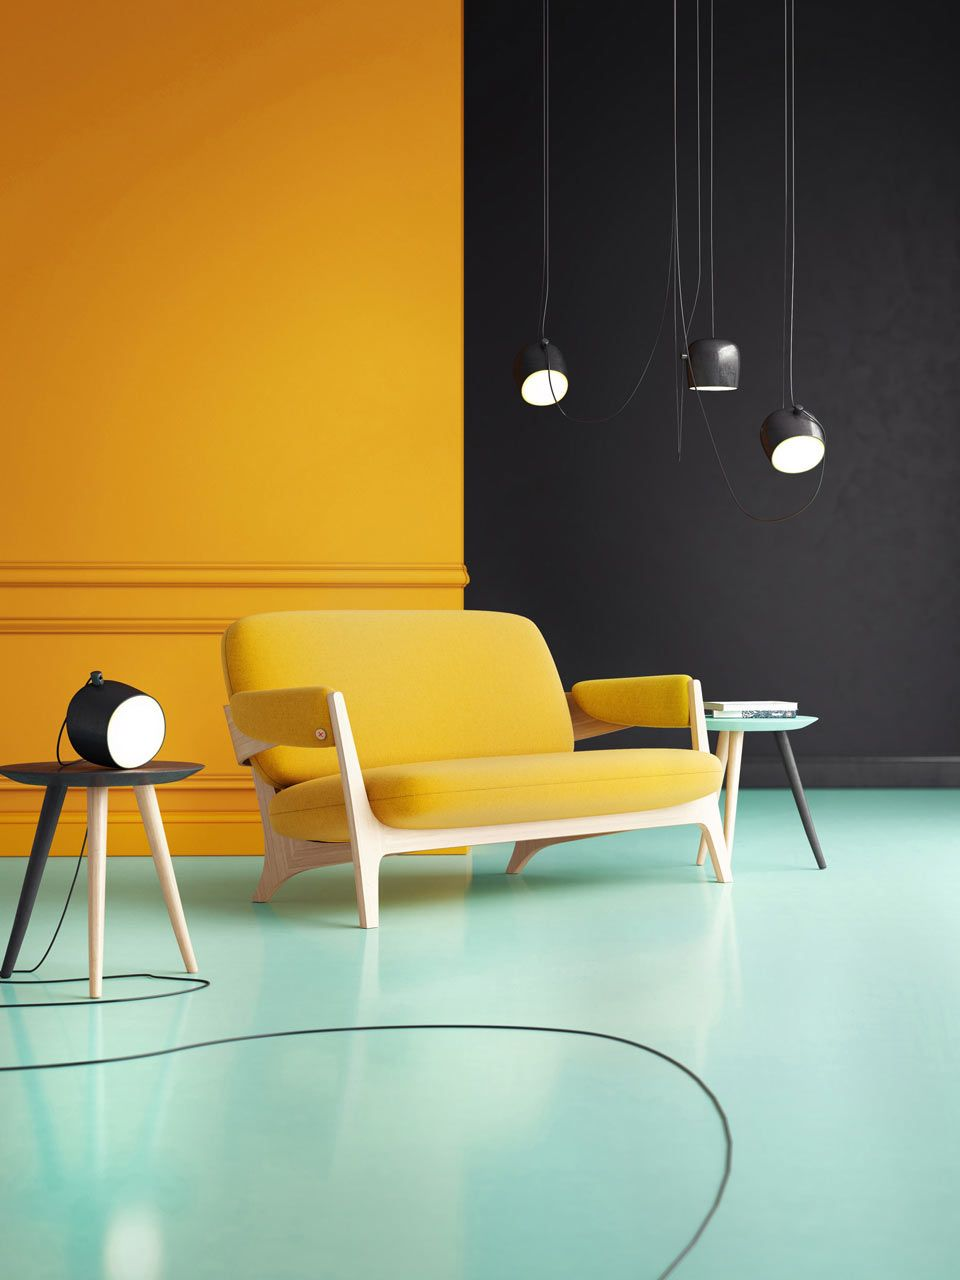 Candy brings a fresh approach to seating rounding interiors and